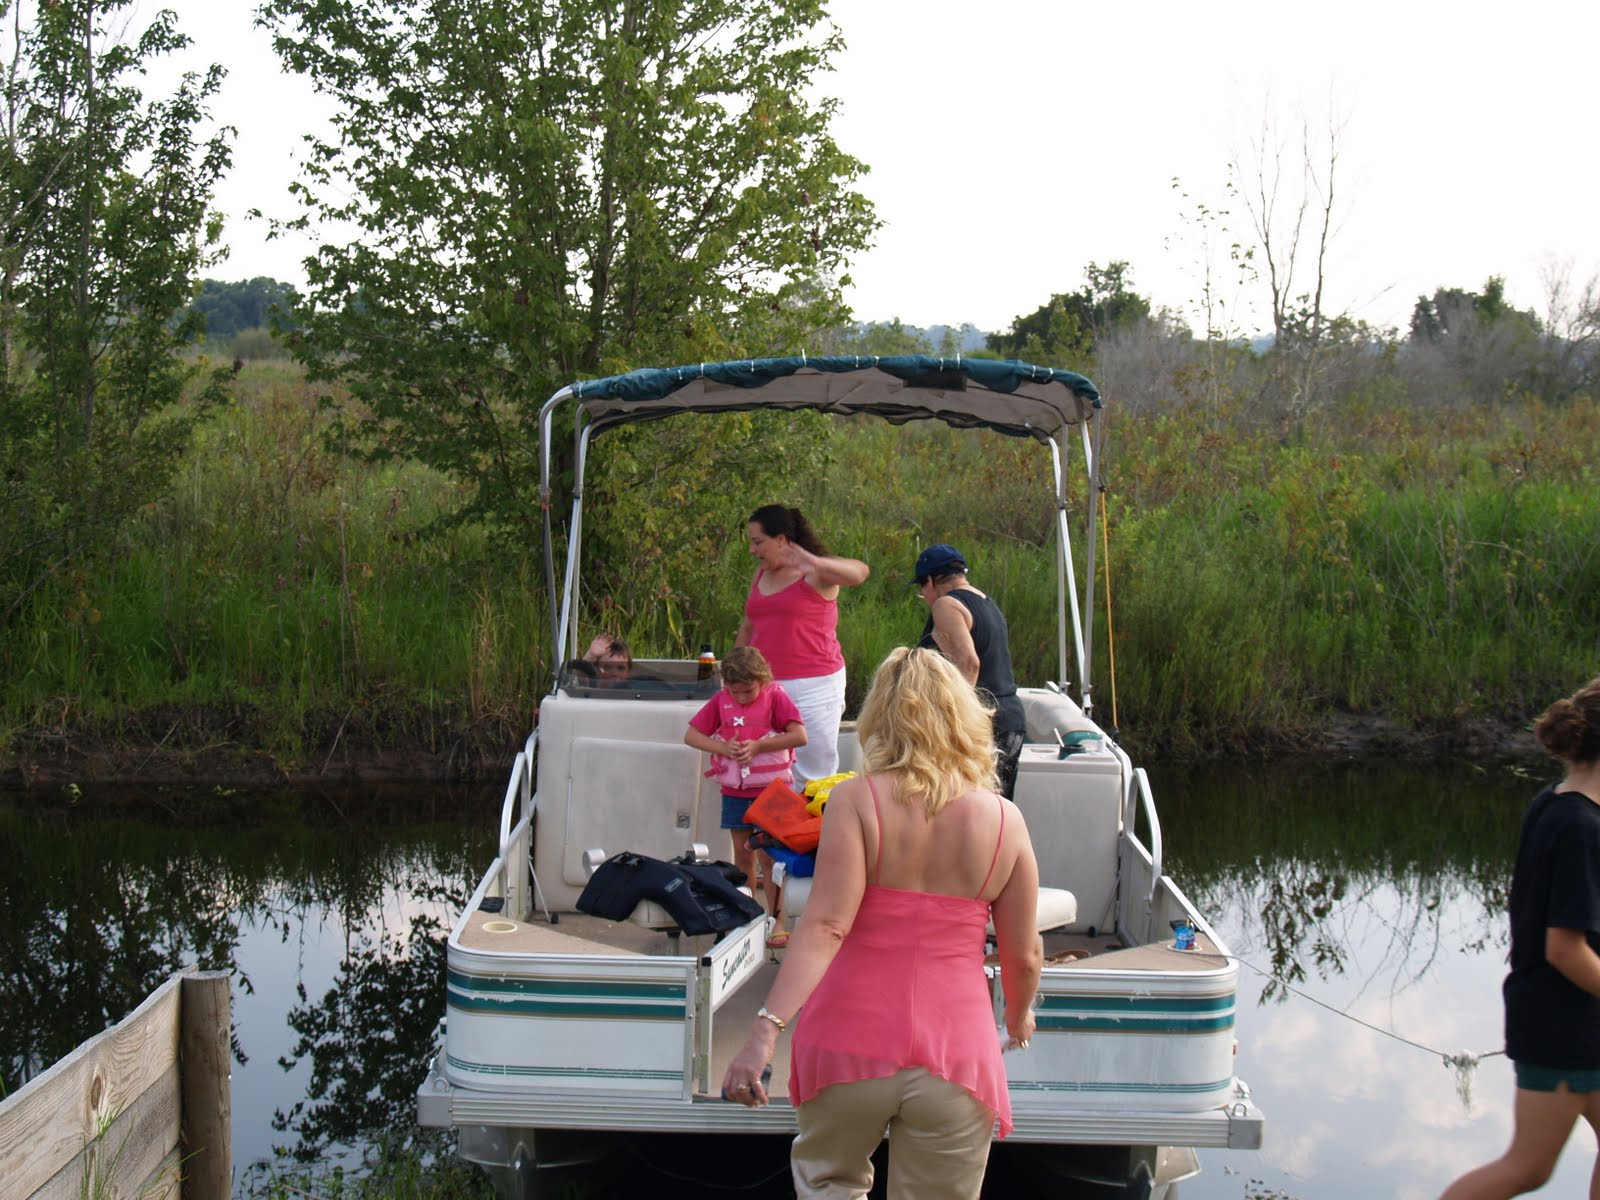 small resolution of when we bought our home in 2005 we inherited a 1996 monark suncaster pontoon boat that made the boat roughly 10 years old and every component on it was